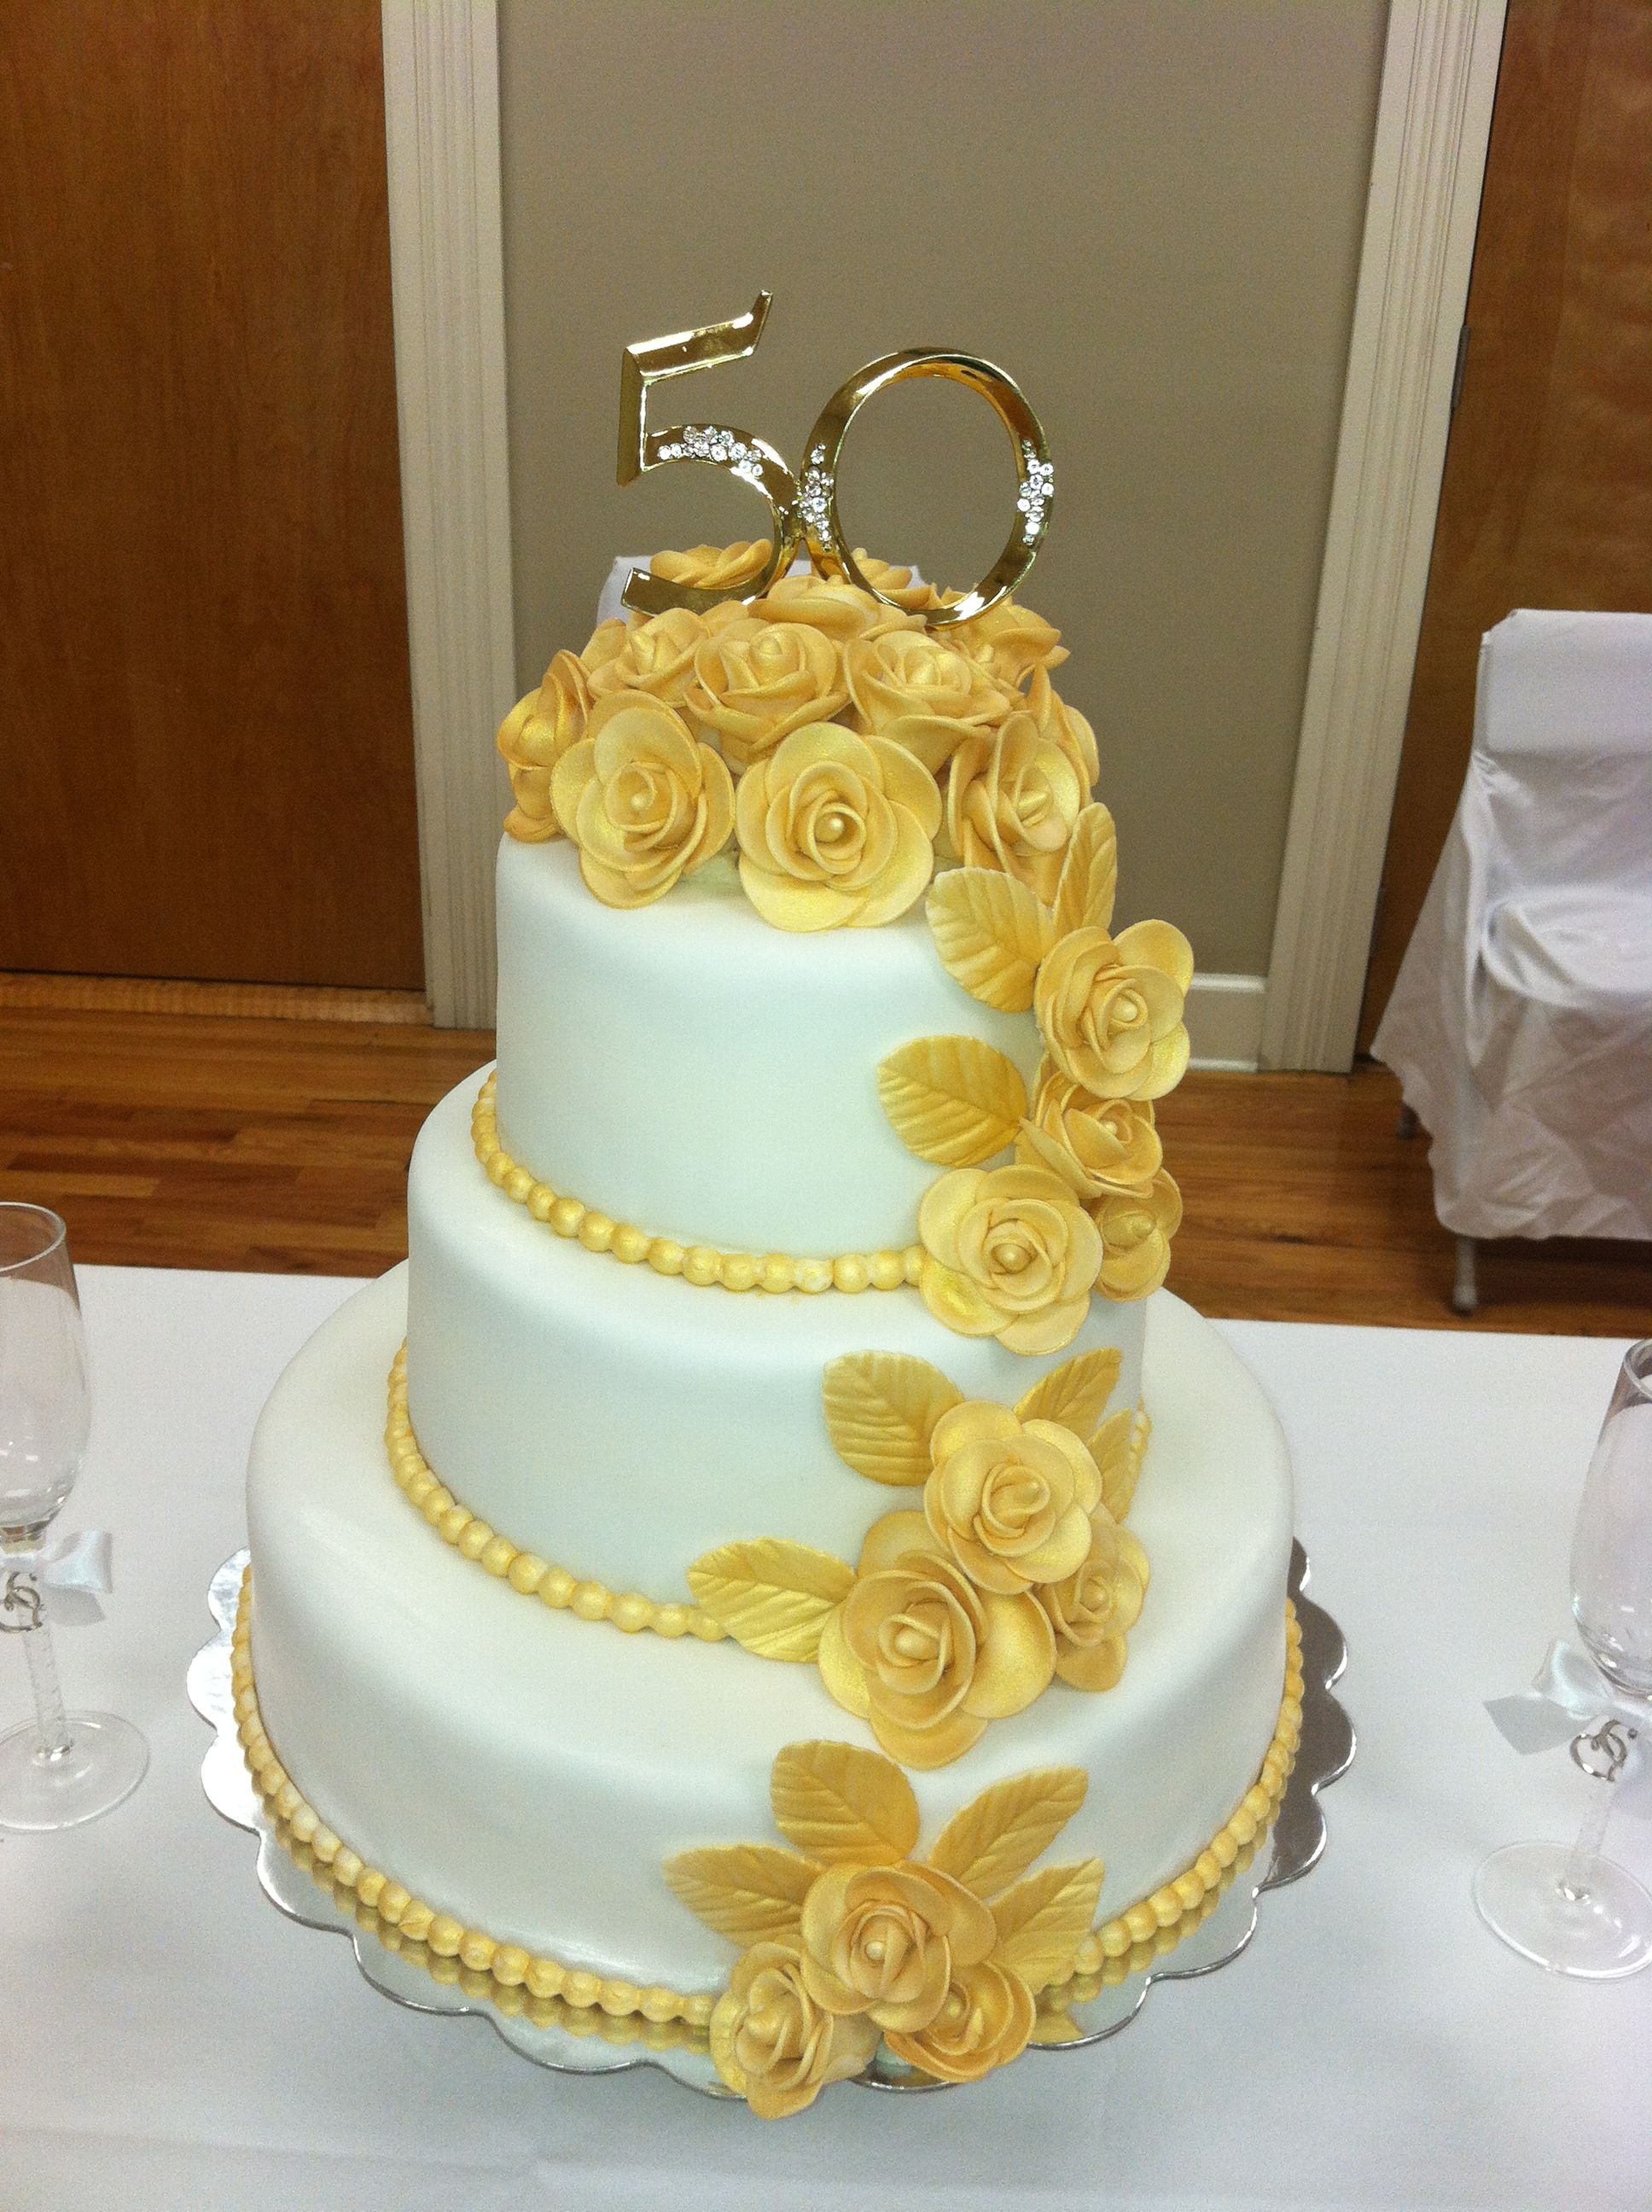 50th wedding cake images 50th wedding anniversary cake the roses are made of gum 10440